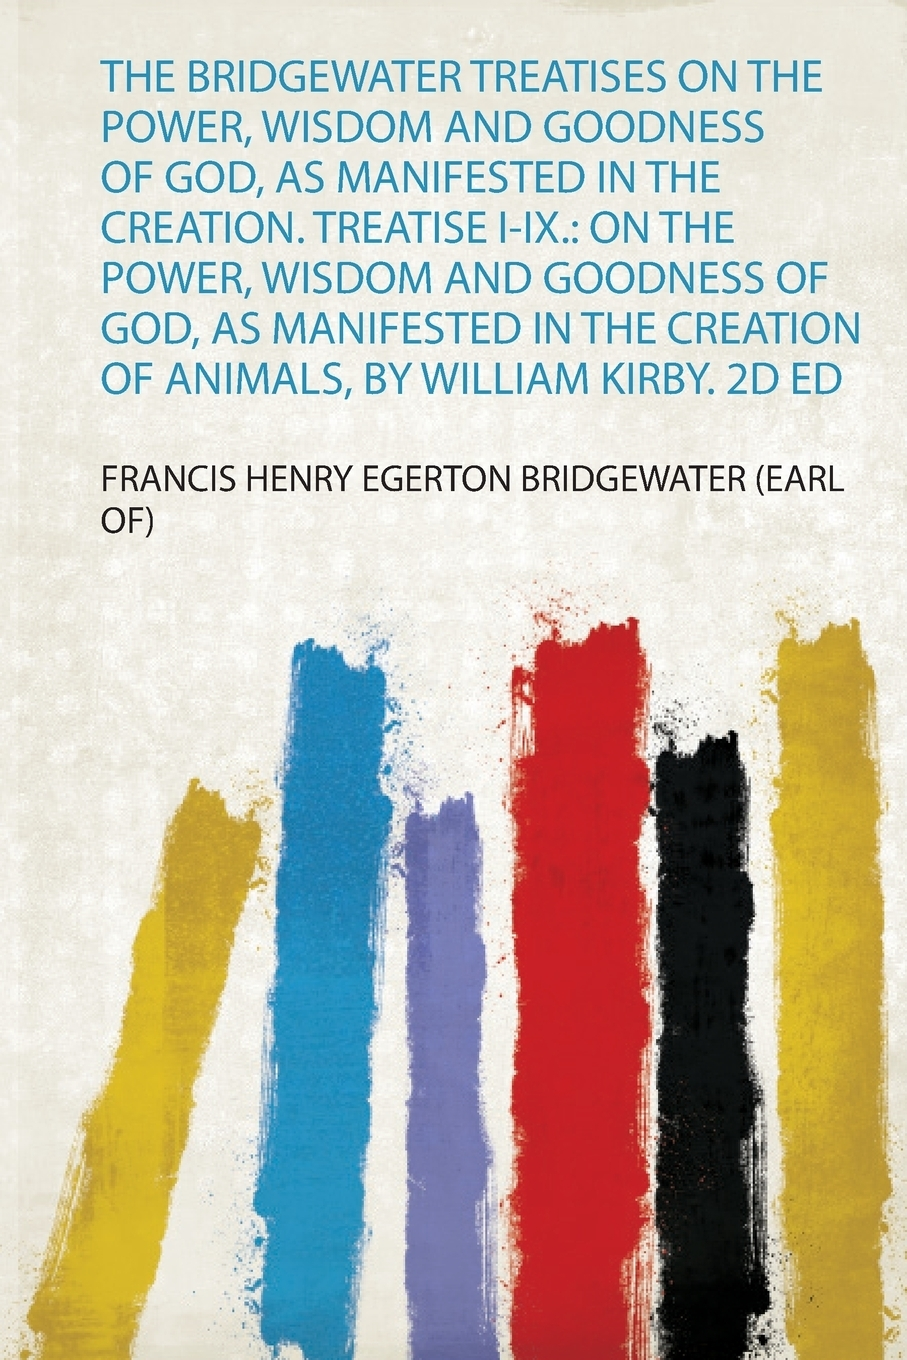 The Bridgewater Treatises on the Power, Wisdom and Goodness of God, as Manifested in the Creation. Treatise I-Ix. on the Power, Wisdom and Goodness of God, as Manifested in the Creation of Animals, by William Kirby. 2D Ed william kirby on the power wisdom and goodness of god as manifested in the creation of animals and in their history habits and instincts volume 1